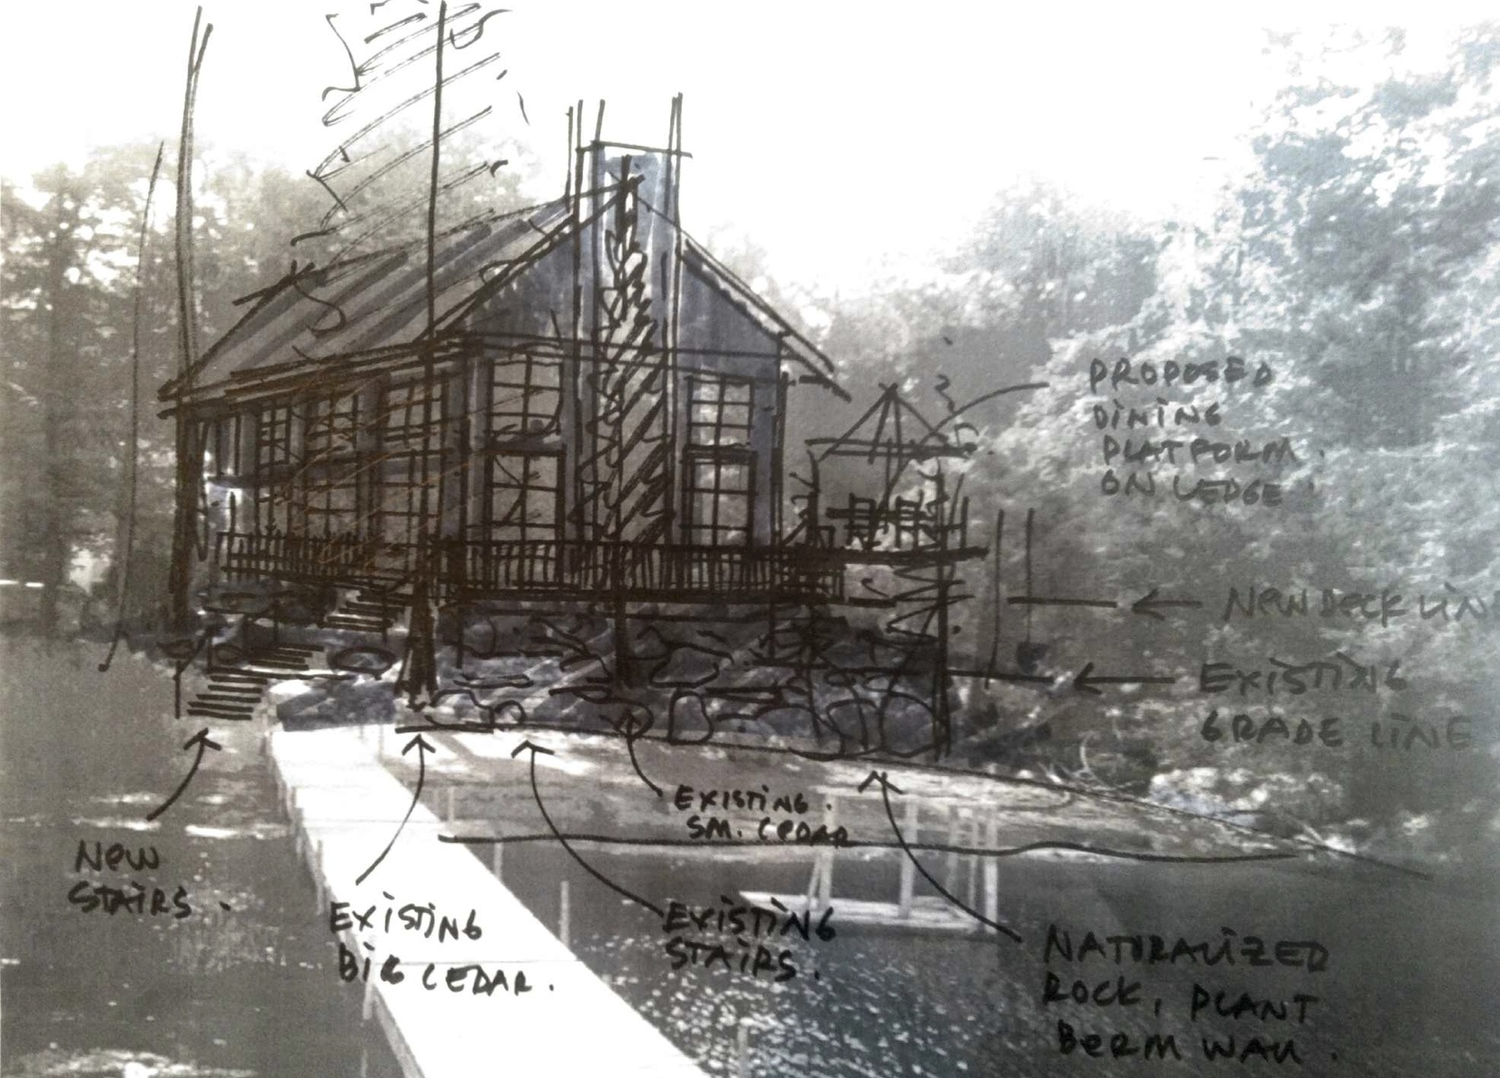 External site studies often guide the overall direction and aesthetic of the cottage space to be designed. This process sketch analyzed the relationship between the structure and the surrounding environment to ensure the best combination of site position, orientation and integration into the landscape. (Casey Design / Planning Group Inc.)